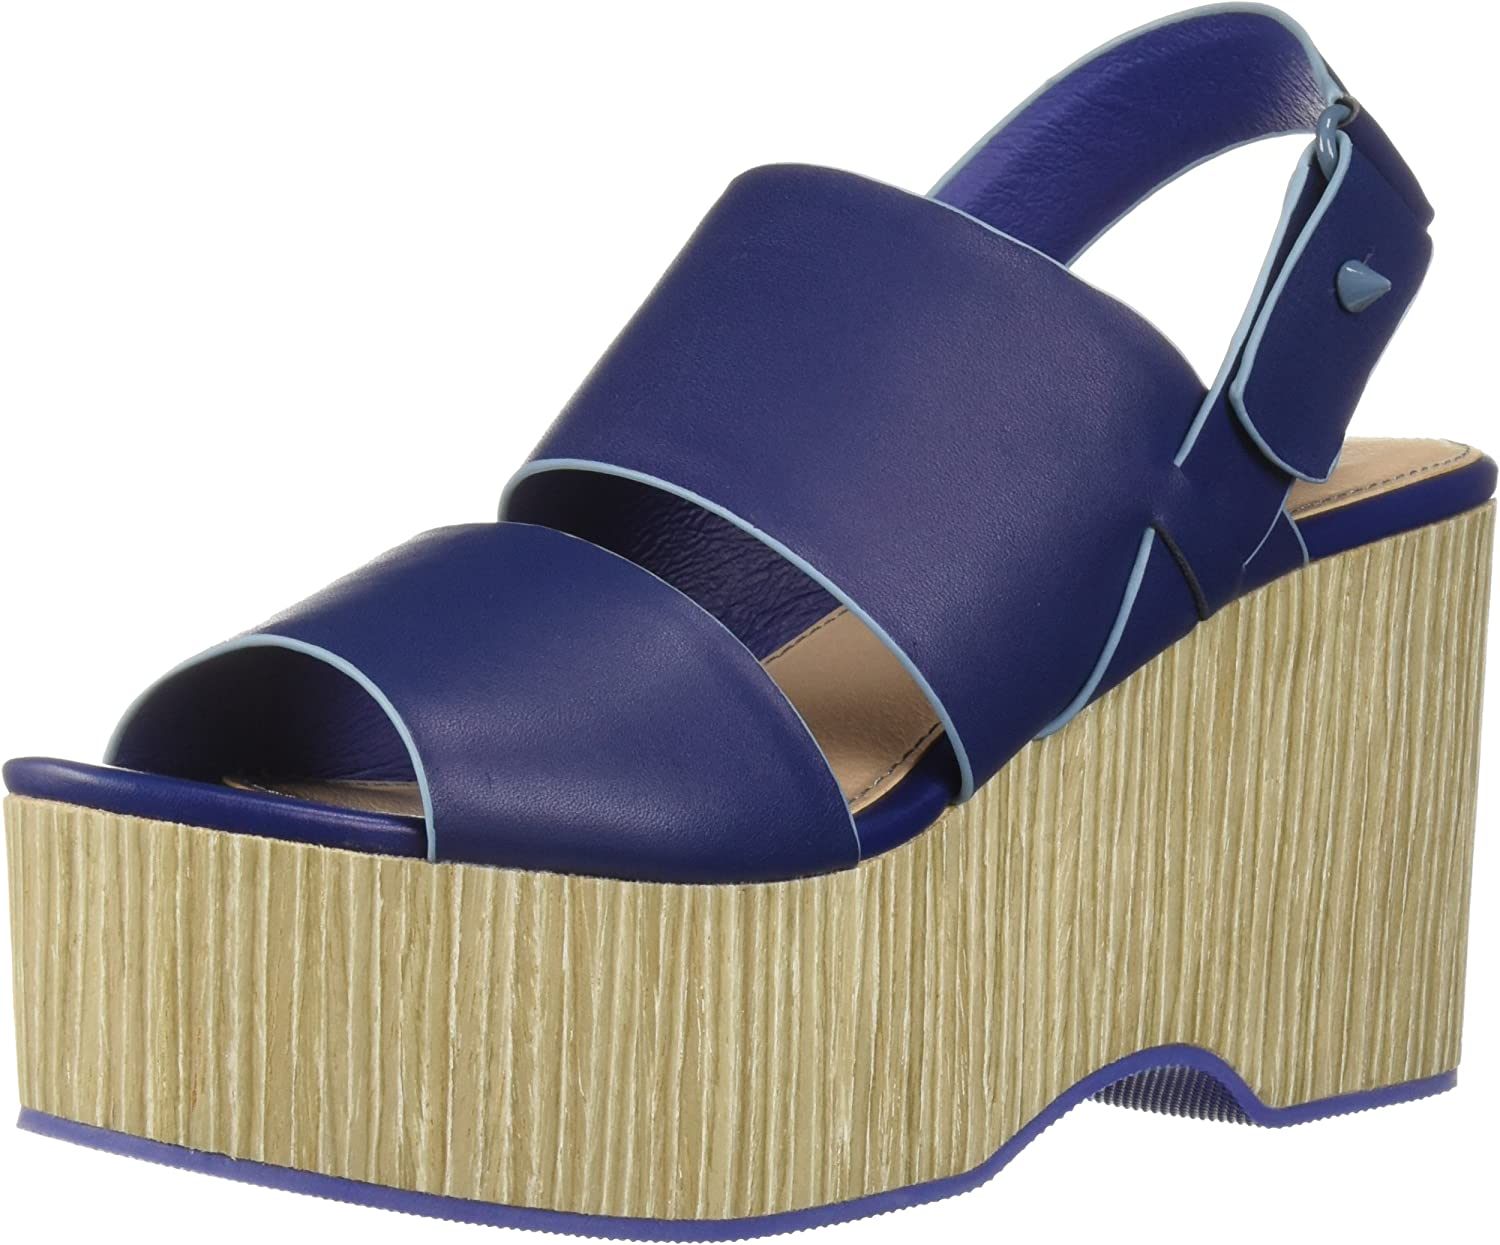 KELSI Today's only DAGGER BROOKLYN Women's Mail order Nash Sandal Heeled